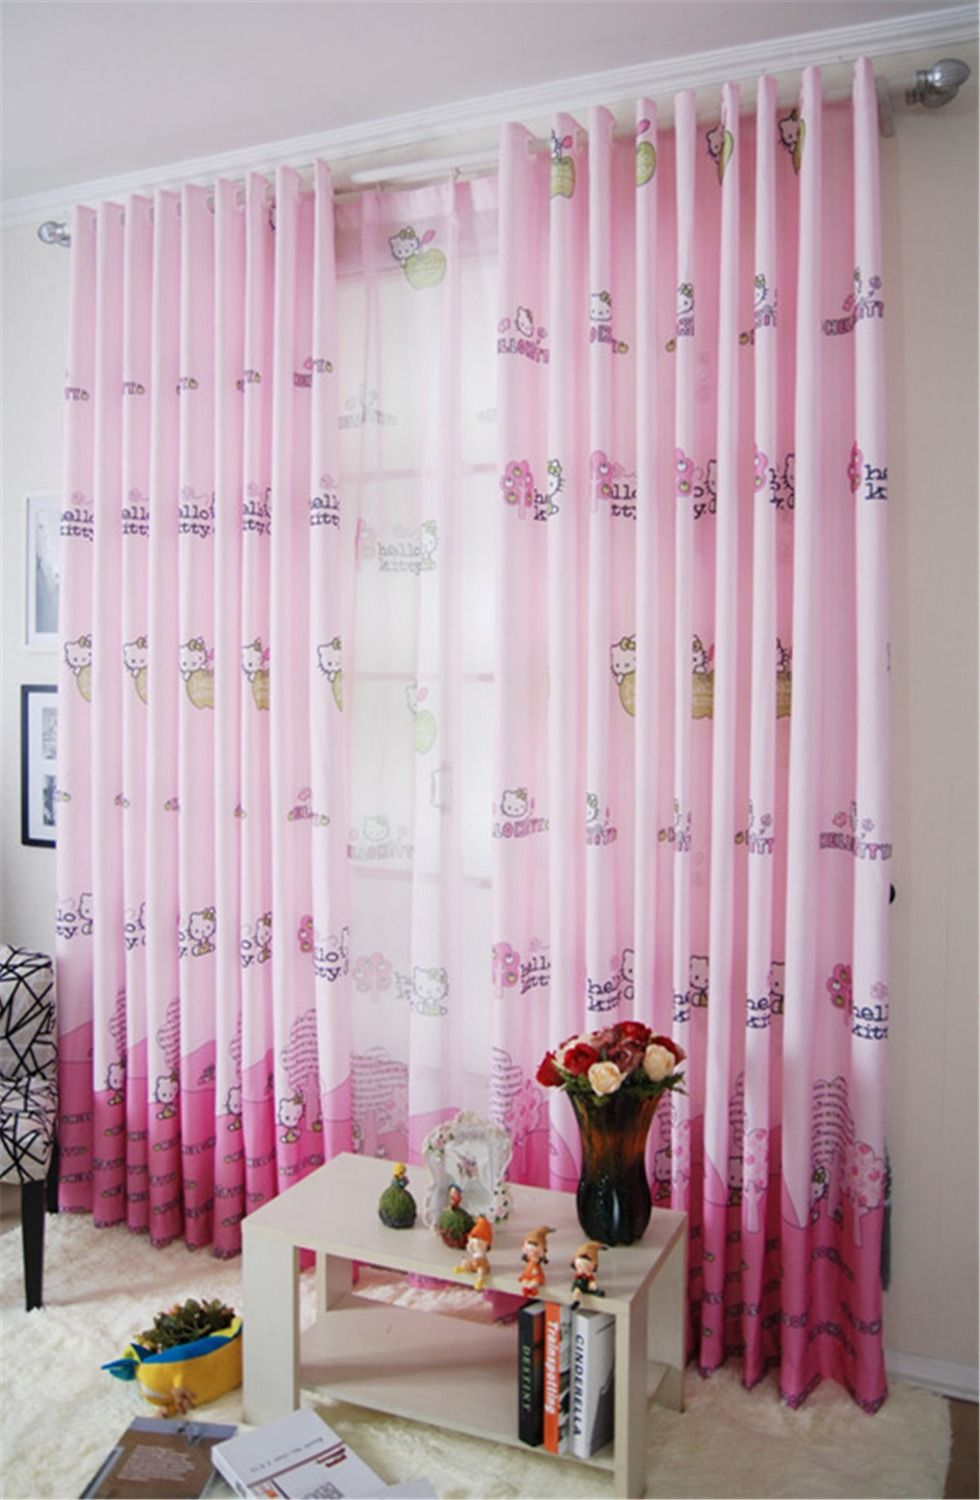 Textile decorative window curtains blackout curtains cute Children cartoon  curtain princess window curtain Free Shipping 3